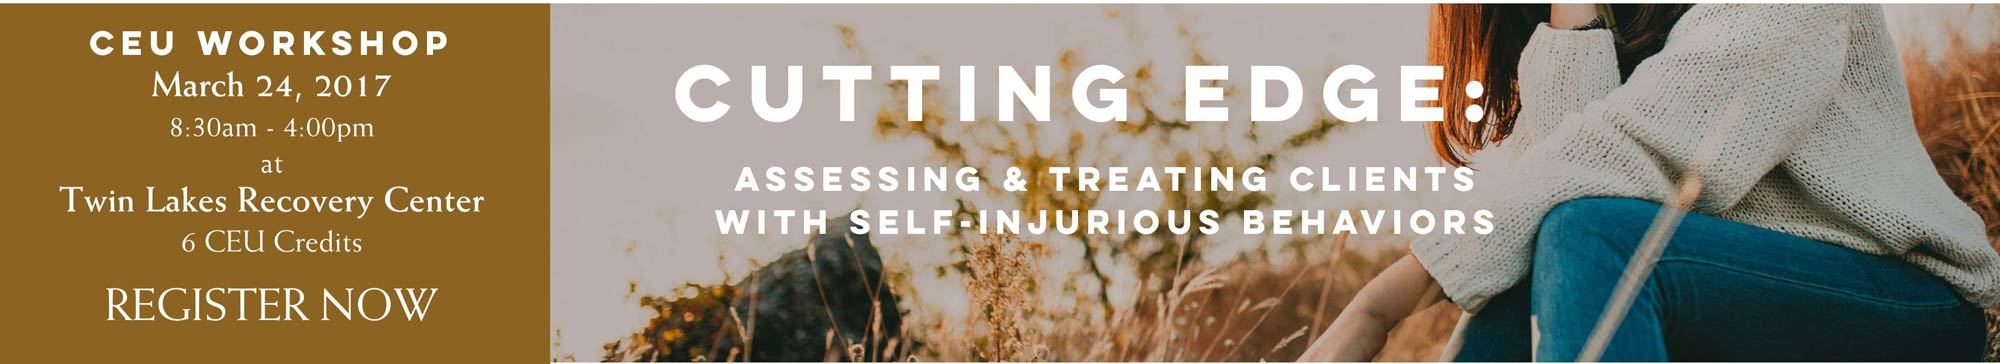 Cutting Edge - Assessing and Treating Clients with Self-injurious behaviors - march 24, 2017 - sponsored by summitbhc and twin lakes recovery center